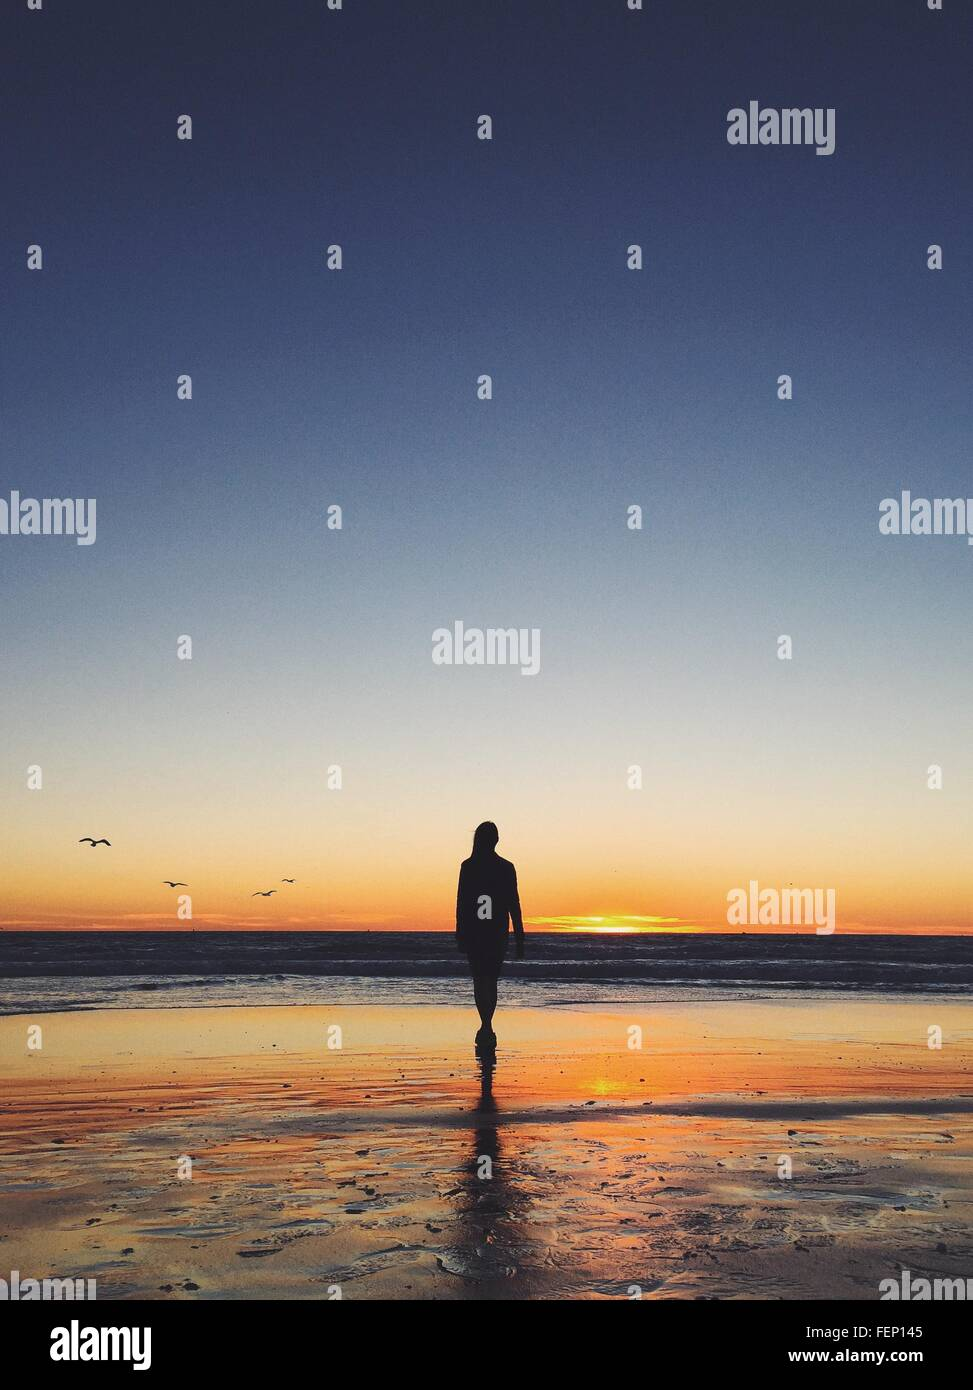 Rear View Of Woman Walking On Beach During Sunset - Stock Image